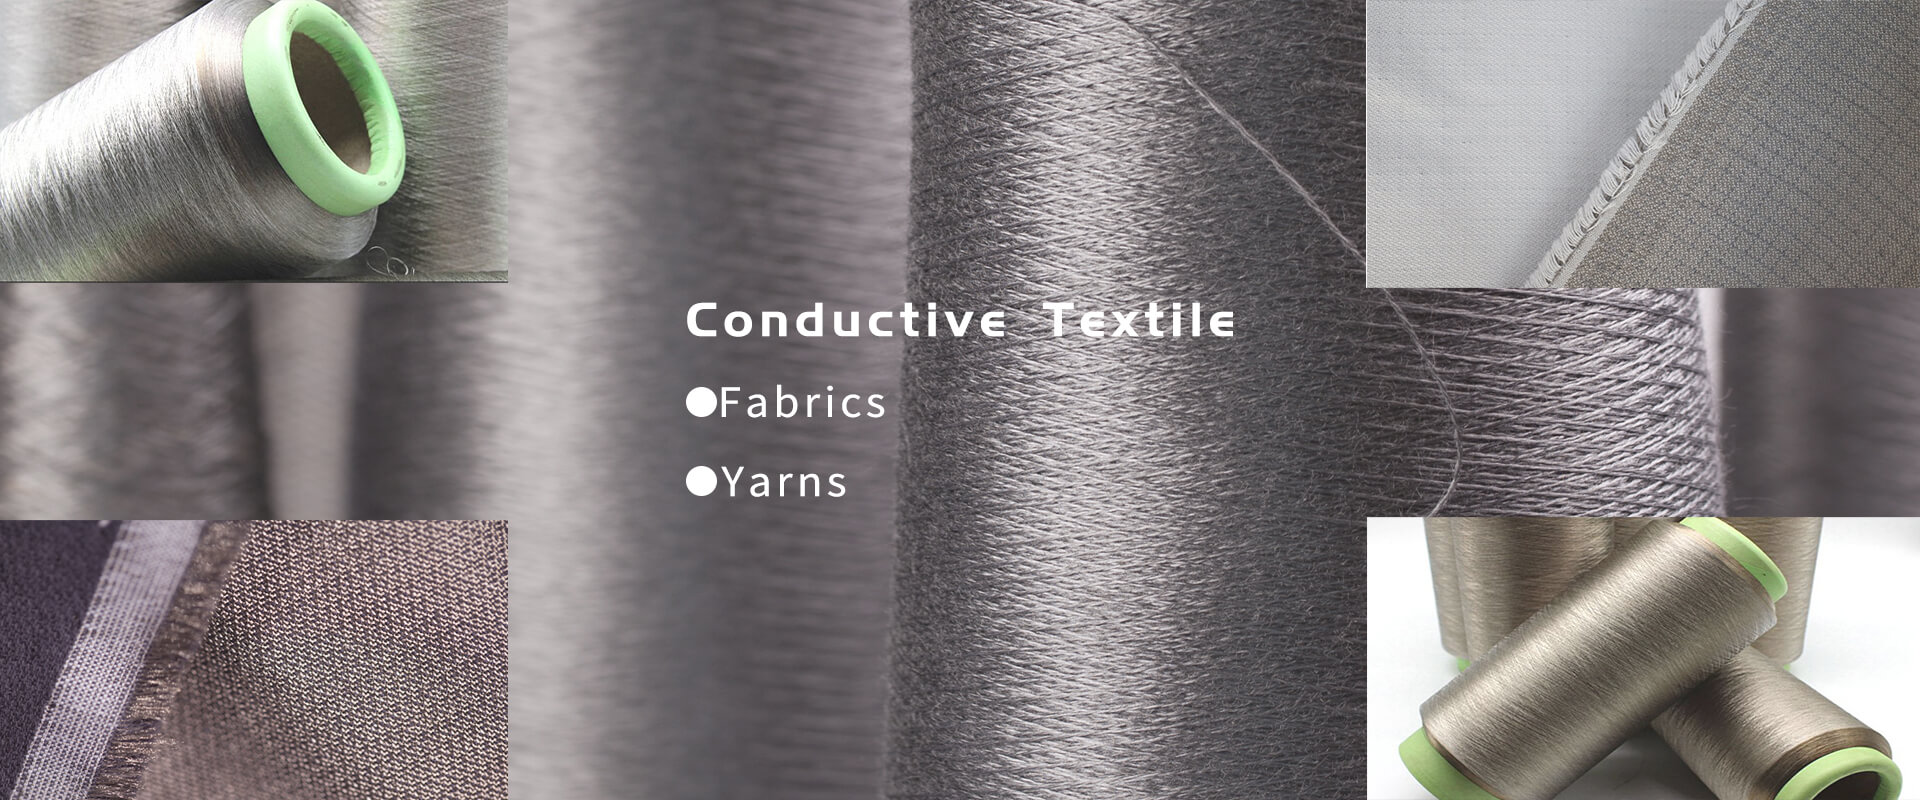 conductive fabric<br>shielding fabric<br>conductive yarn<br>conductive yarns